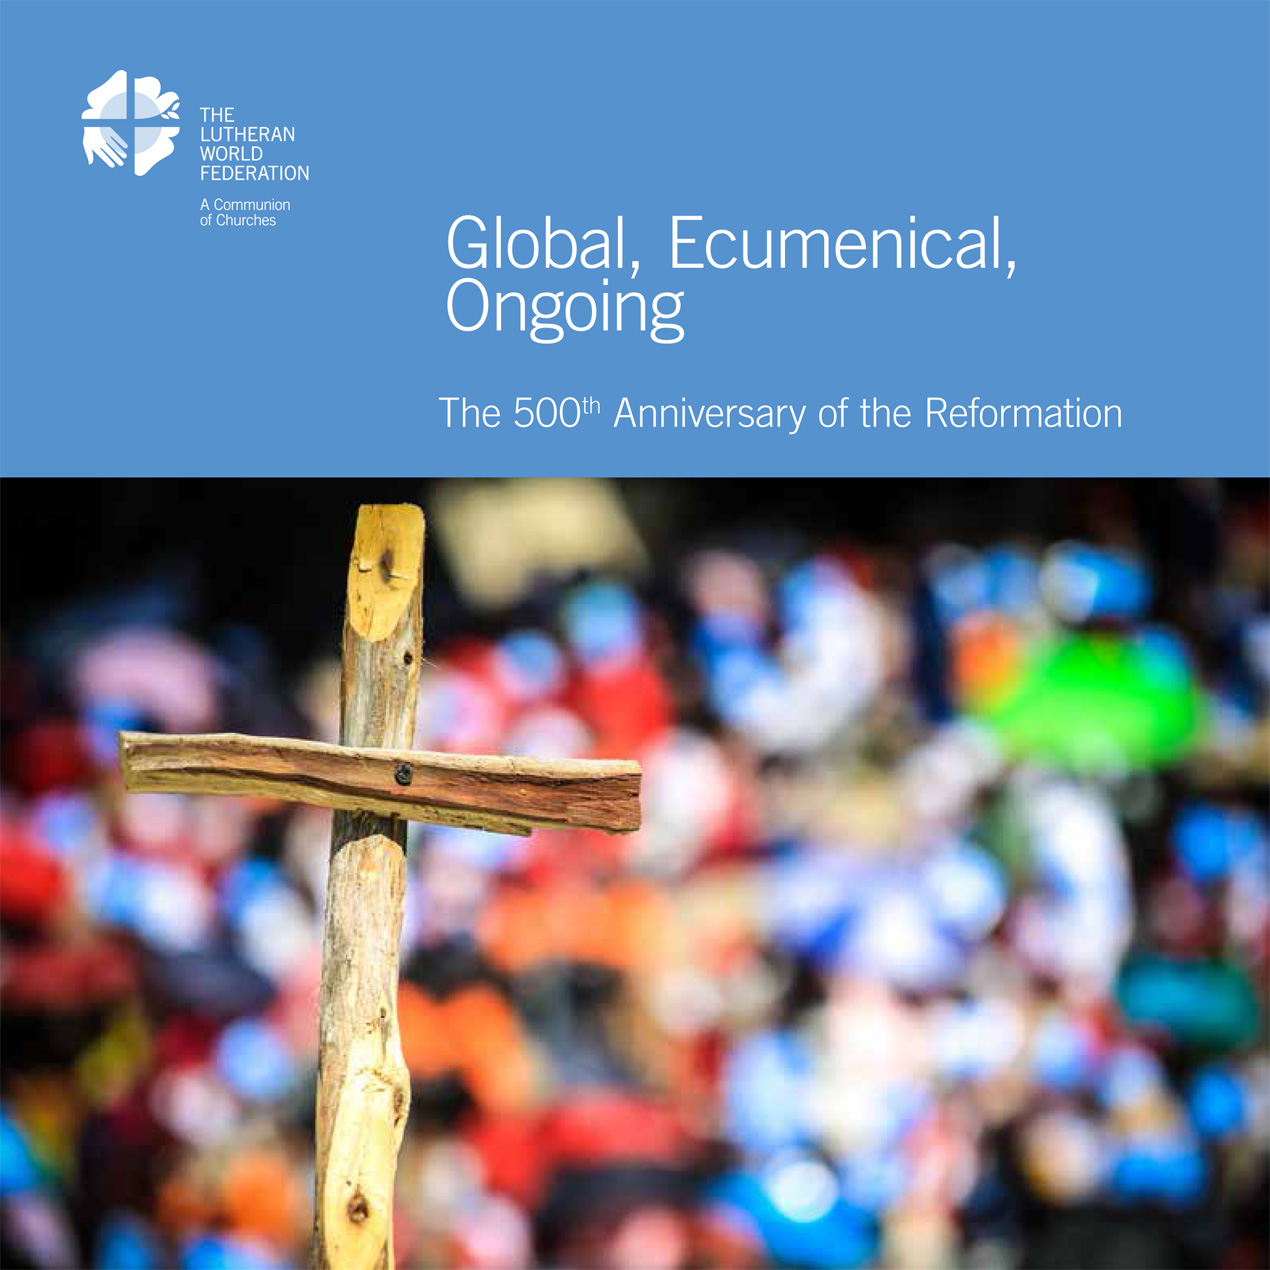 Global, Ecumenical, Ongoing. The 500th Anniversary of the Reformation.